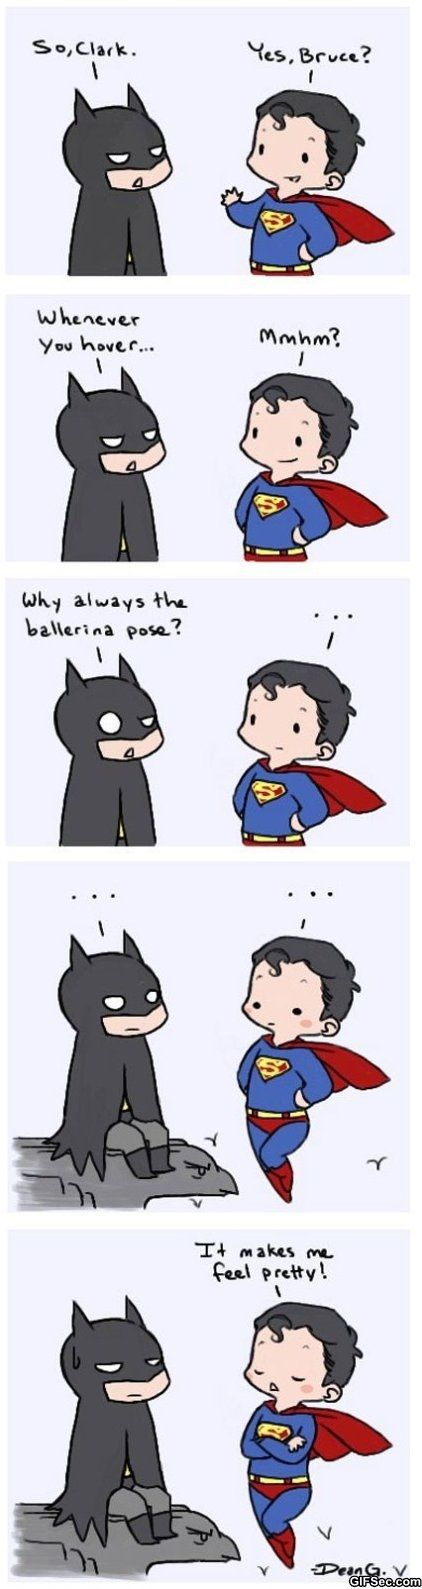 Batman vs. Superman - Funny Pictures, MEME and GIF